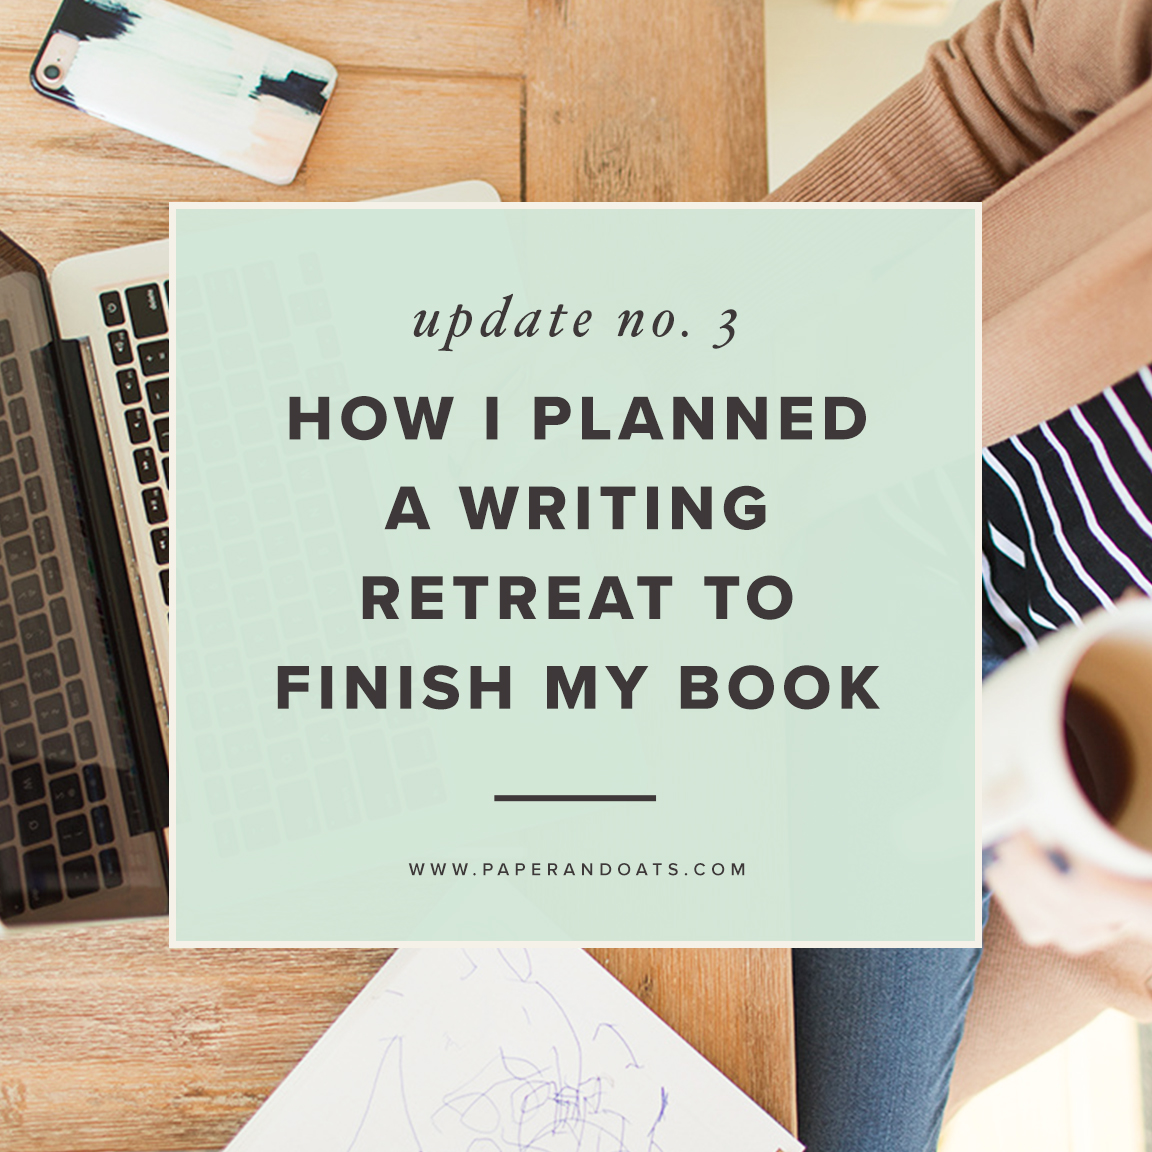 How I planned a writing retreat to finish my book (update no. 3) - by Paper + Oats